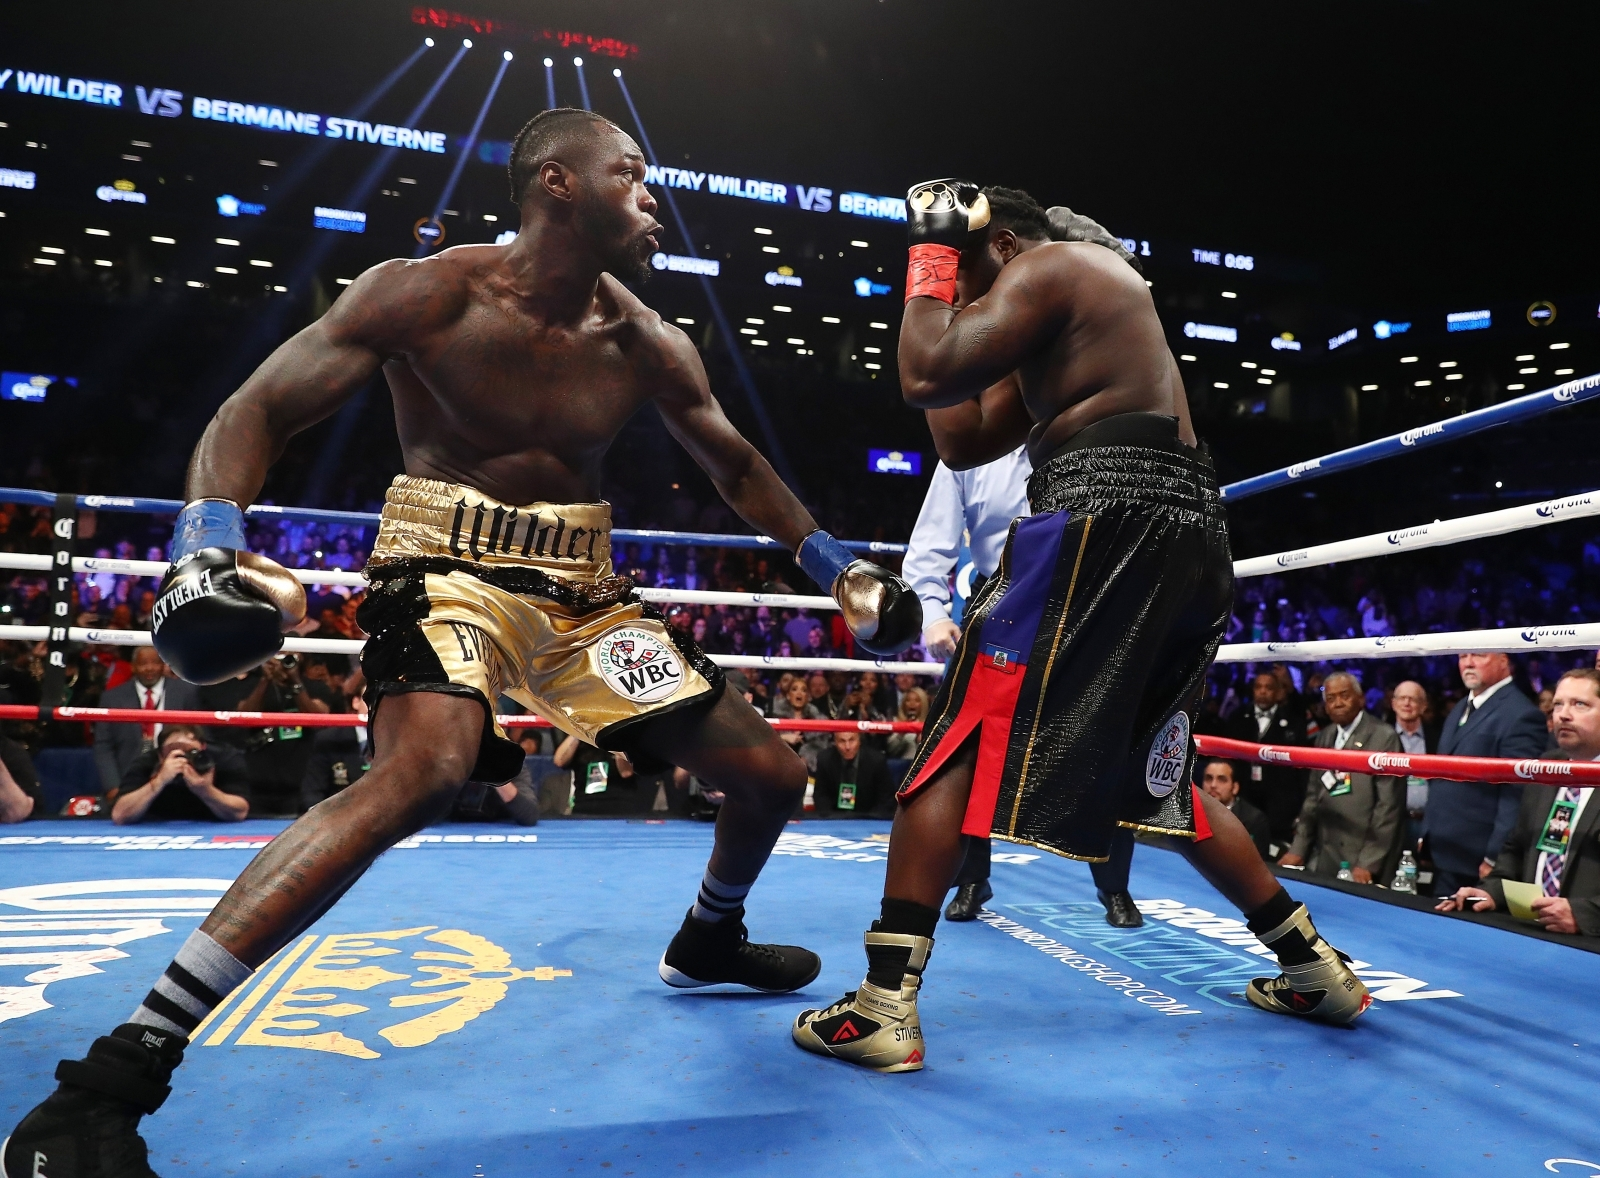 Deontay Wilder urged to 'destroy' Luis Oritz to make Anthony Joshua sweat